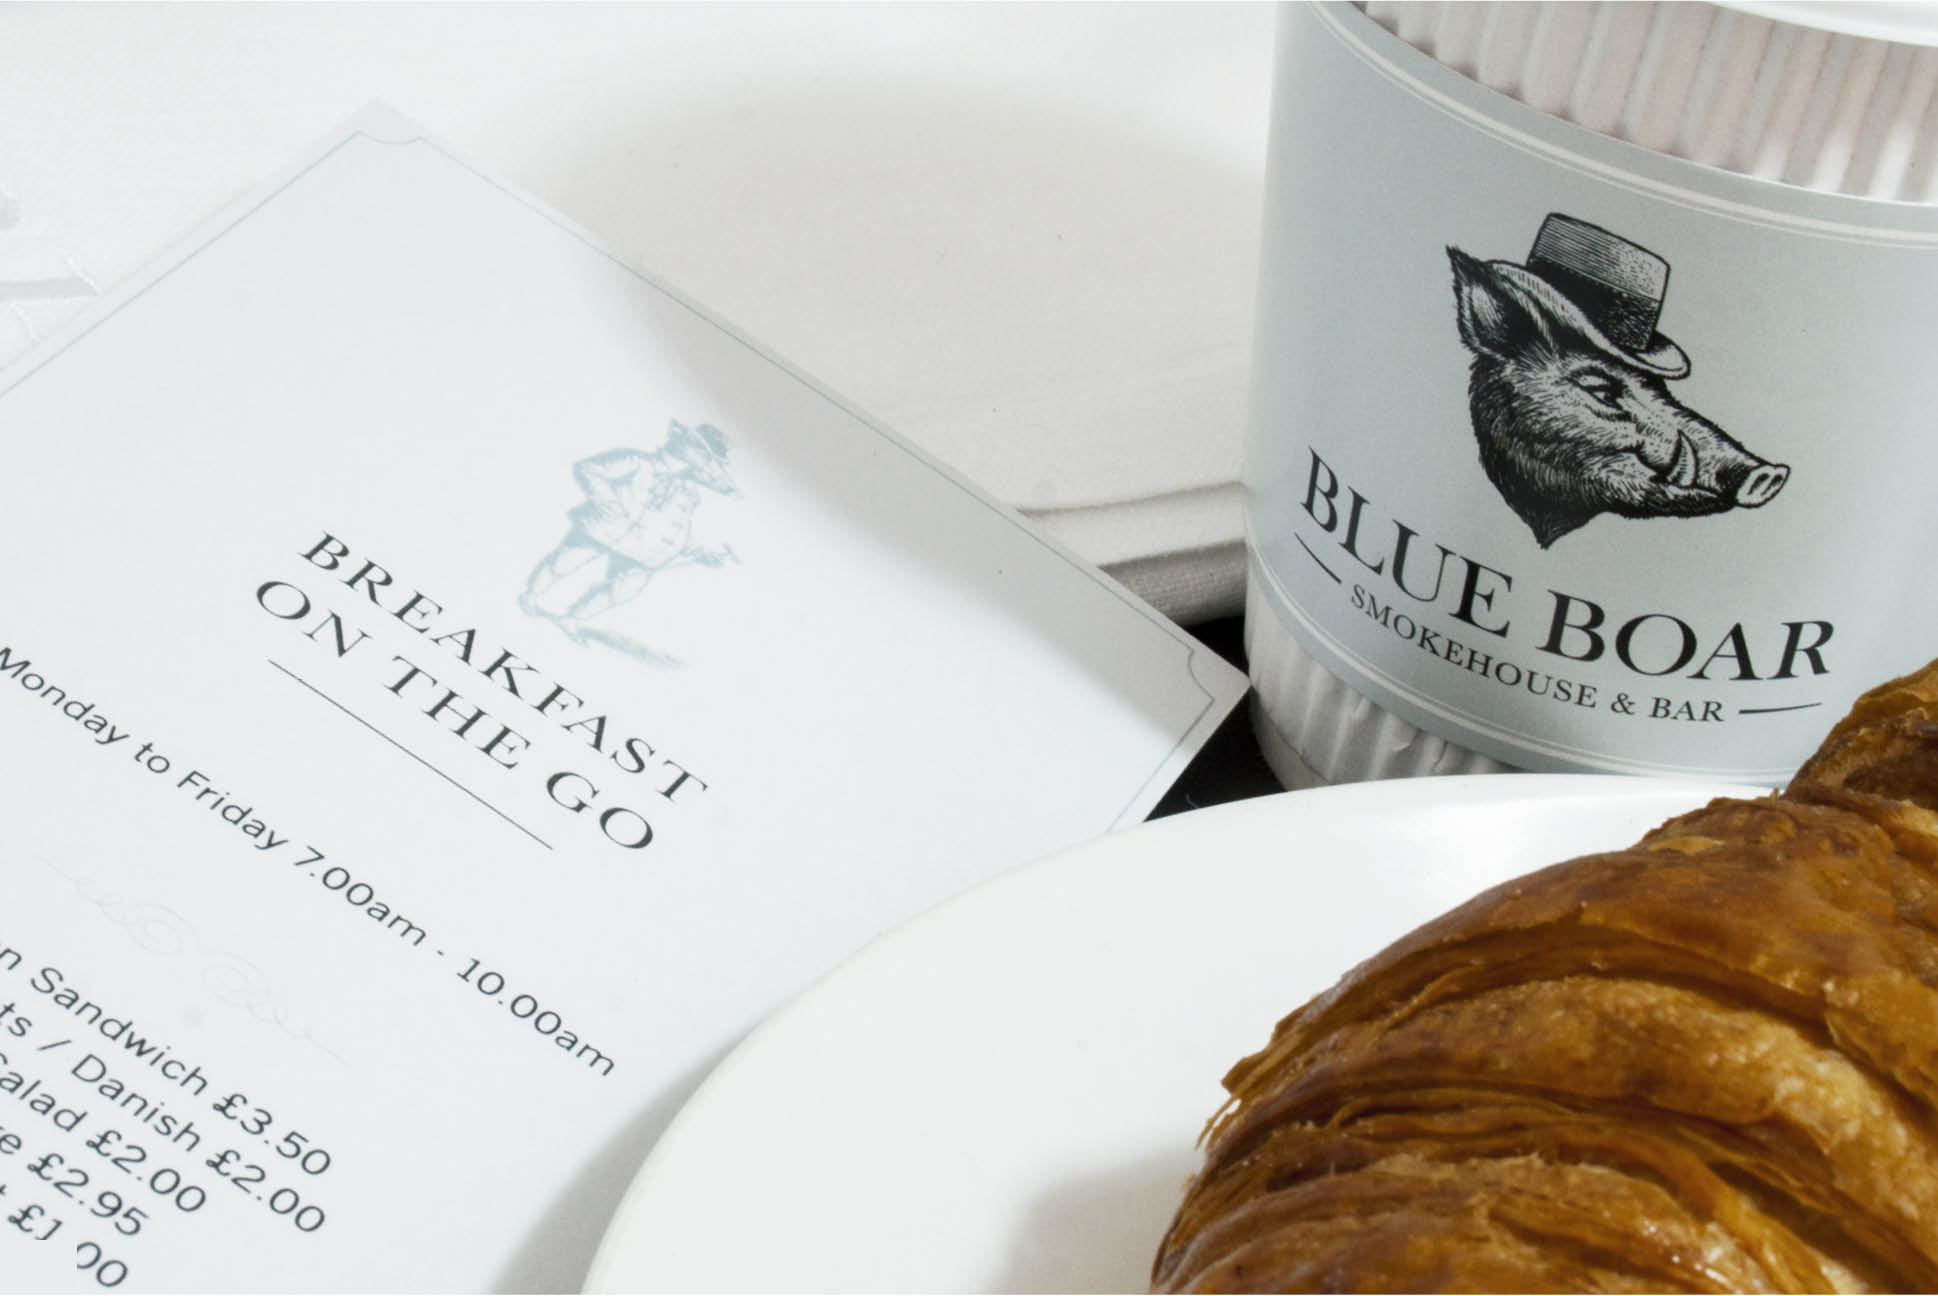 Blue Boar packaging   Branding and Promotional Collateral - Independent Marketing   IM London   Restaurant Marketing in London